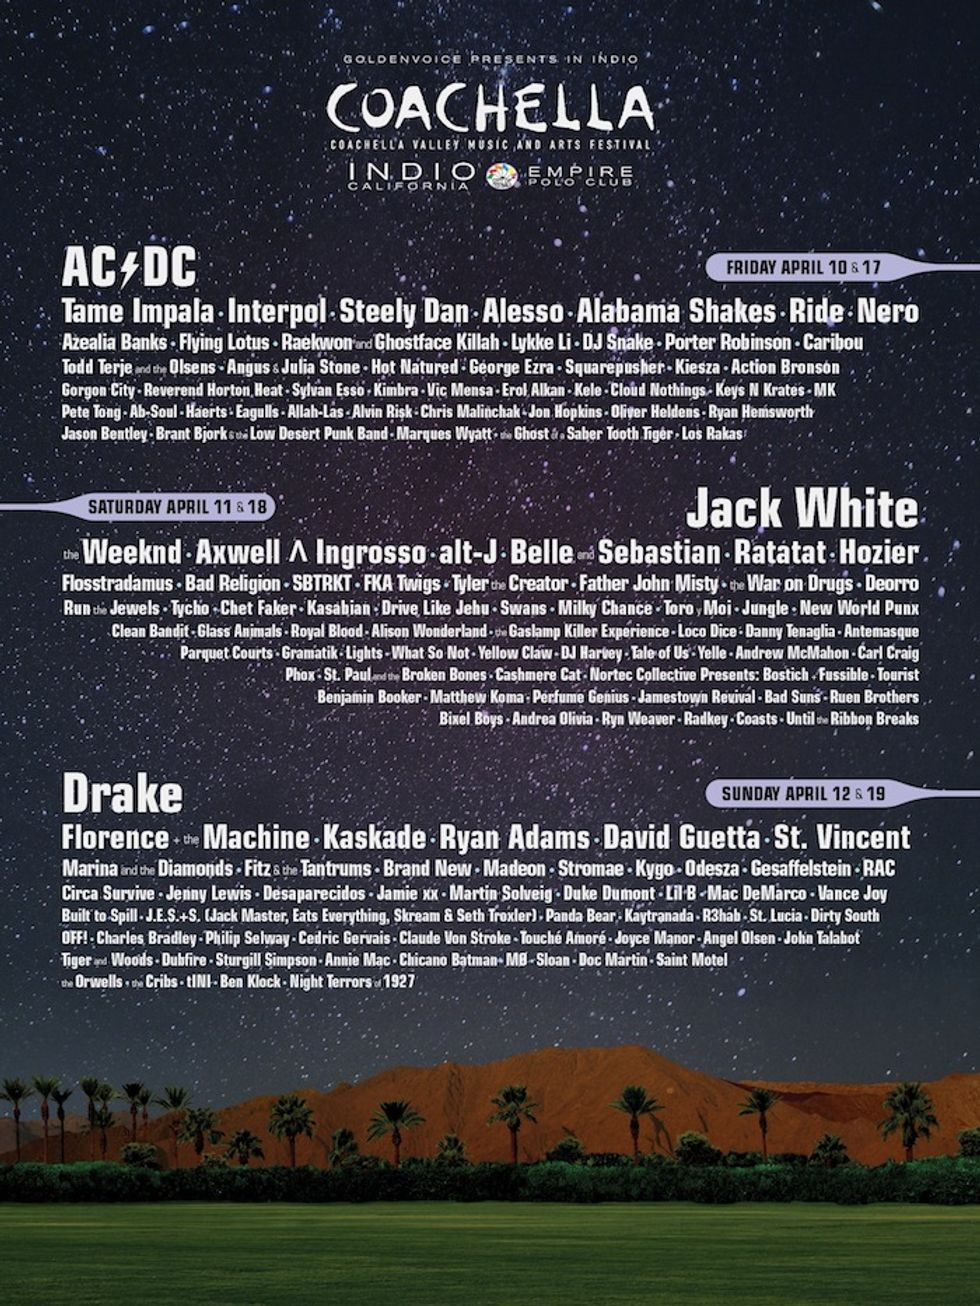 The Coachella Line-Up Is Here: Drake, AC/DC and Jack White Are Headlining